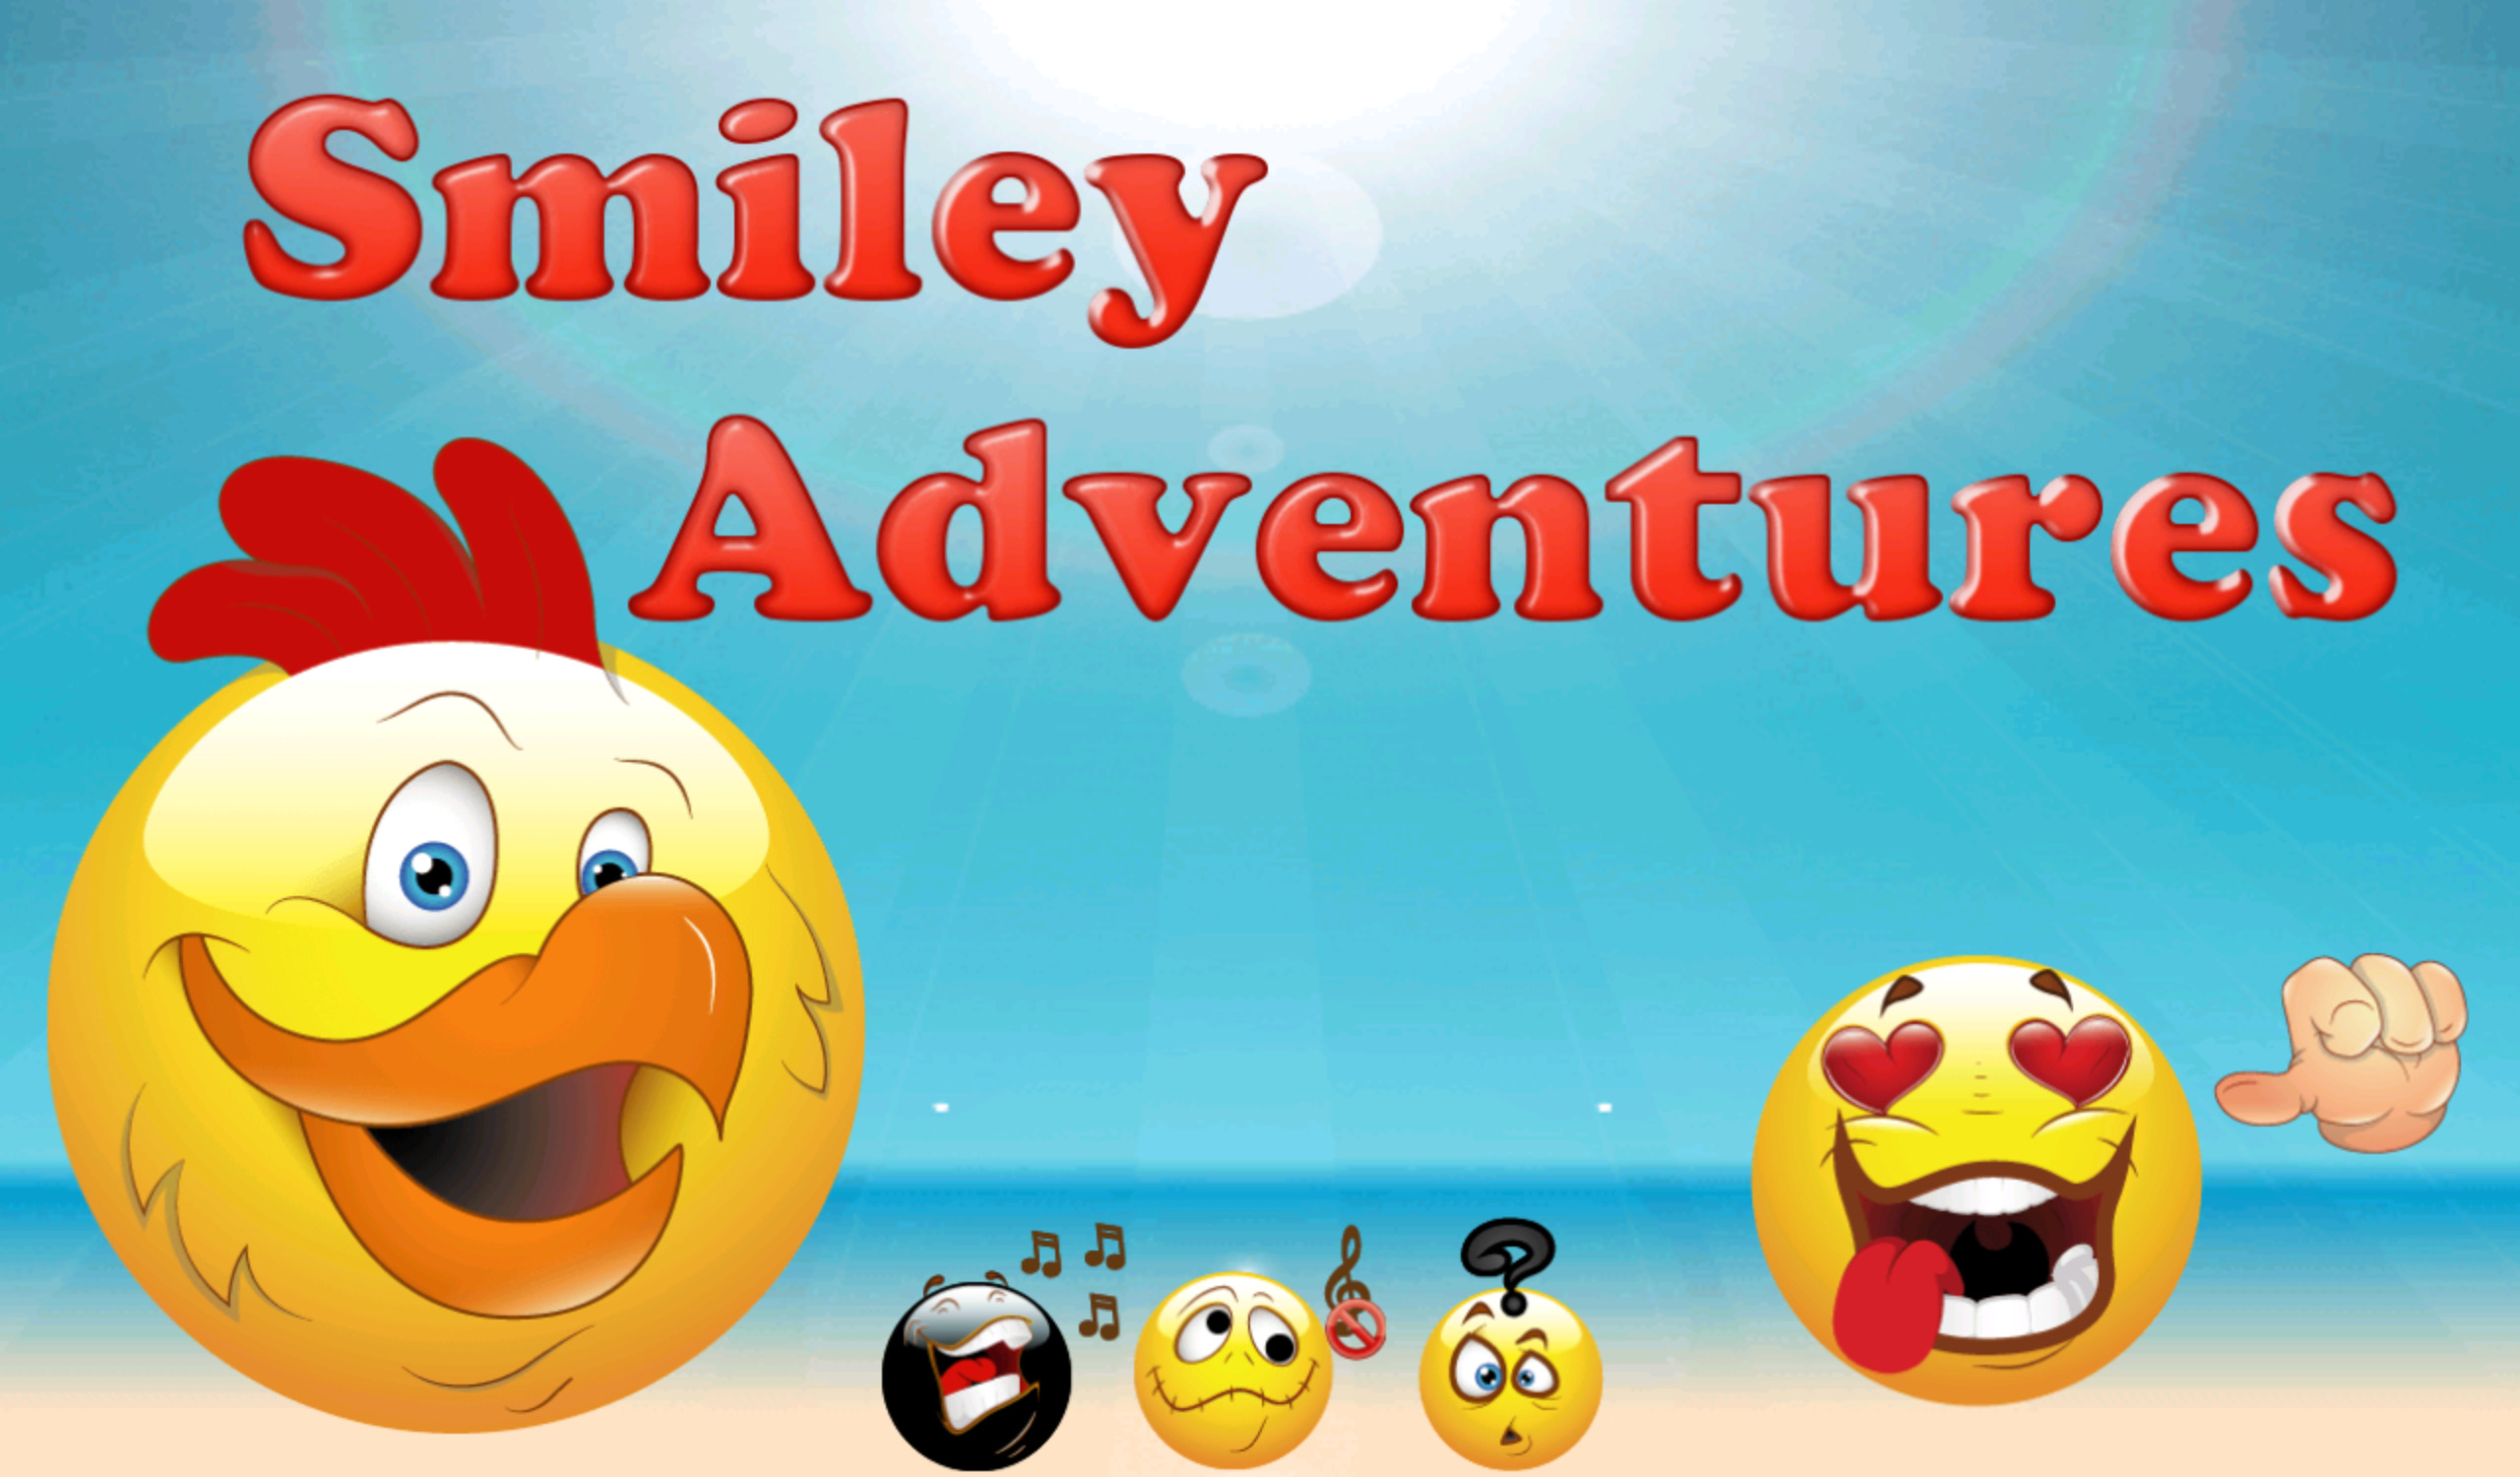 Smiley Adventures